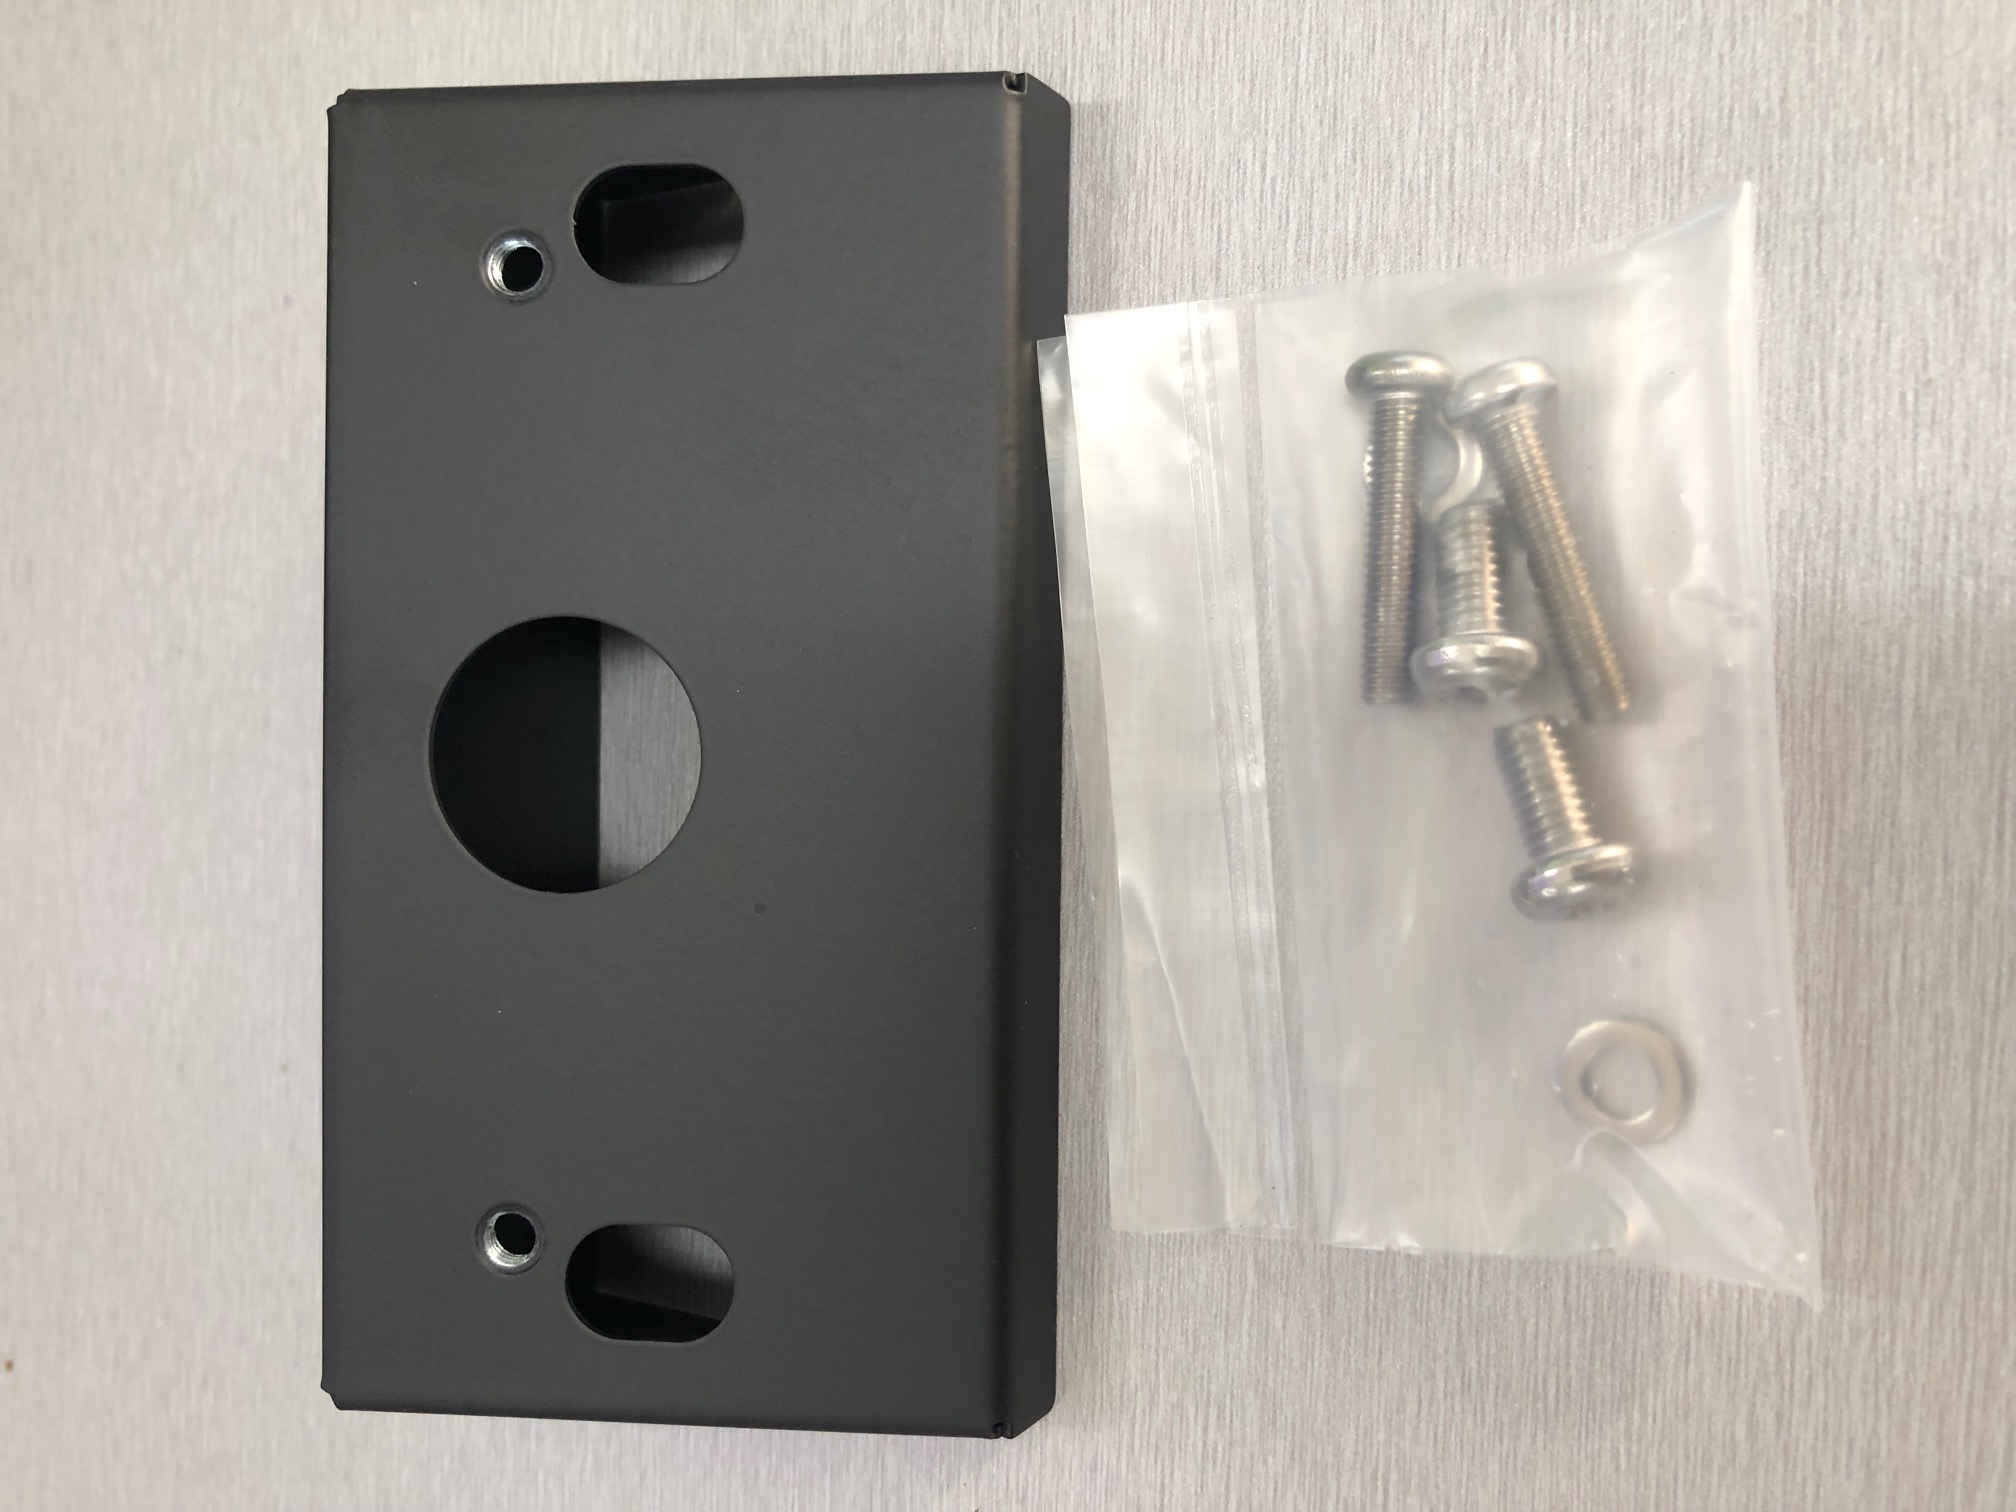 TOSHIBA SCALE DISPLAY MOUNT FOR SYSTEM 7 SCO